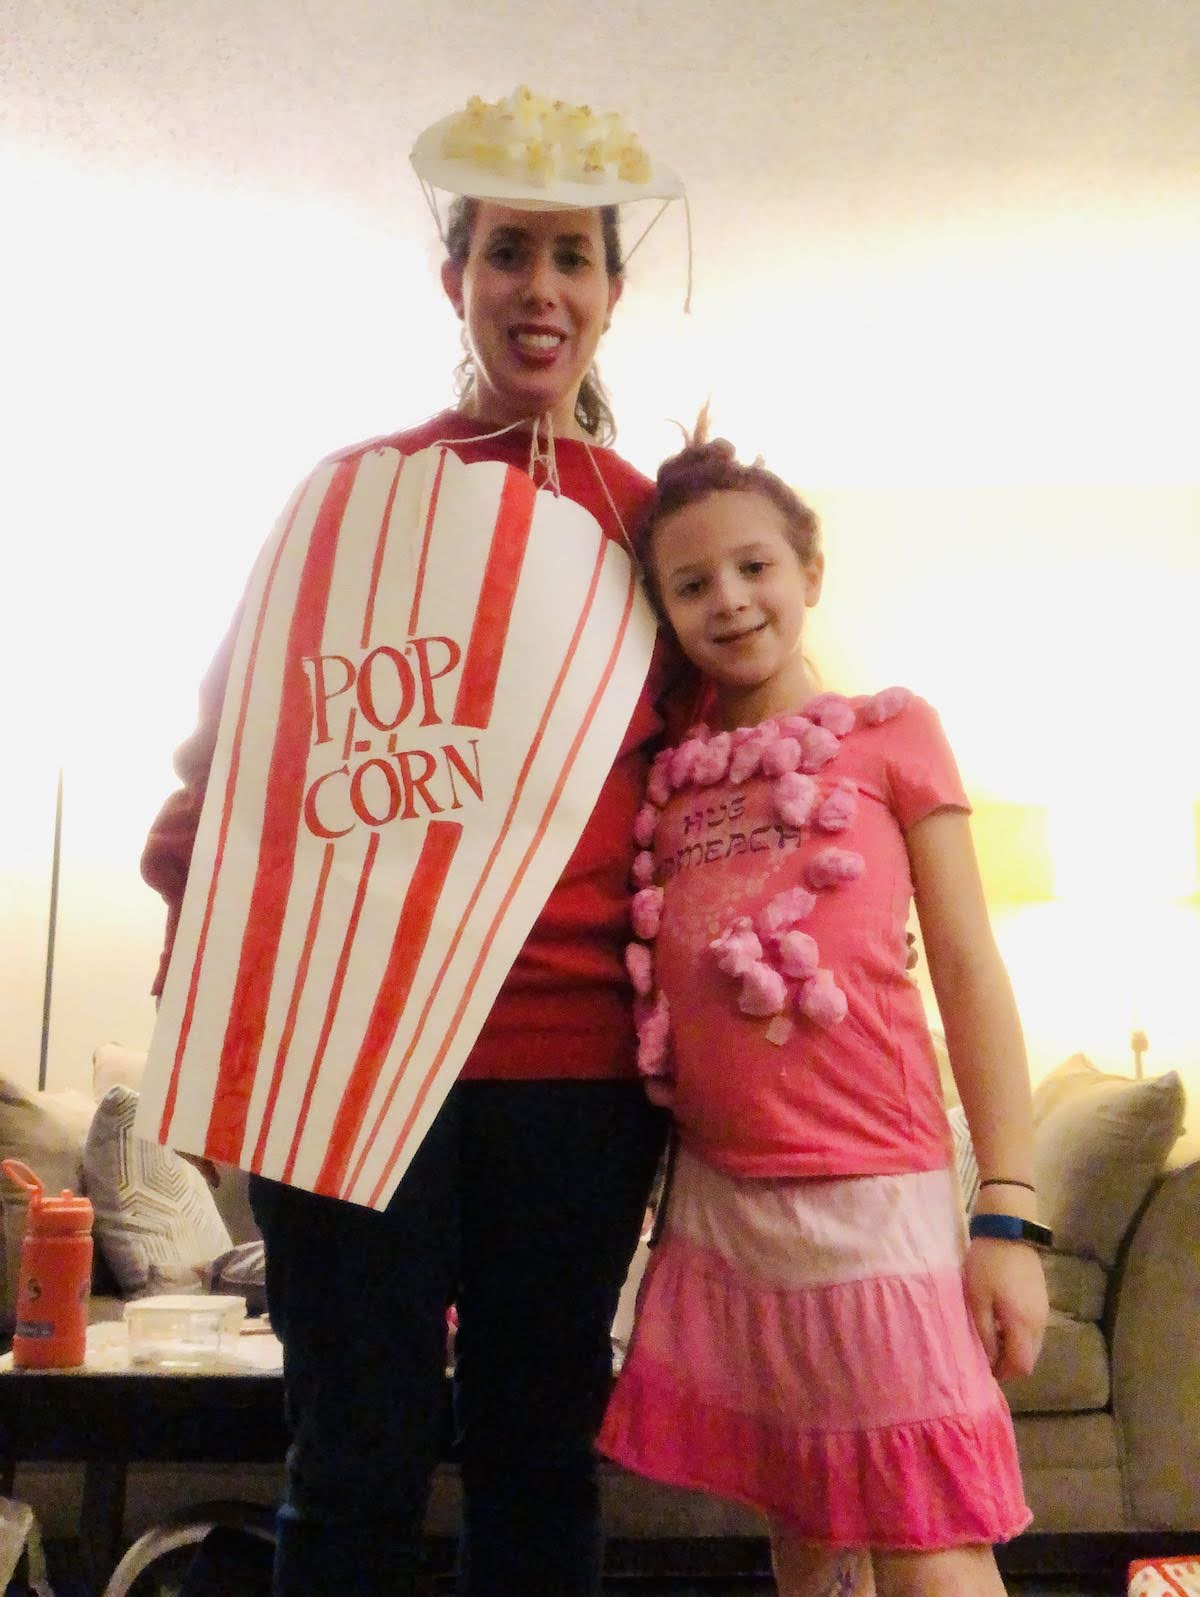 Sarah and Gali Feinberg in their Purim costumes (popcorn and cotton candy) (Courtesy photo)